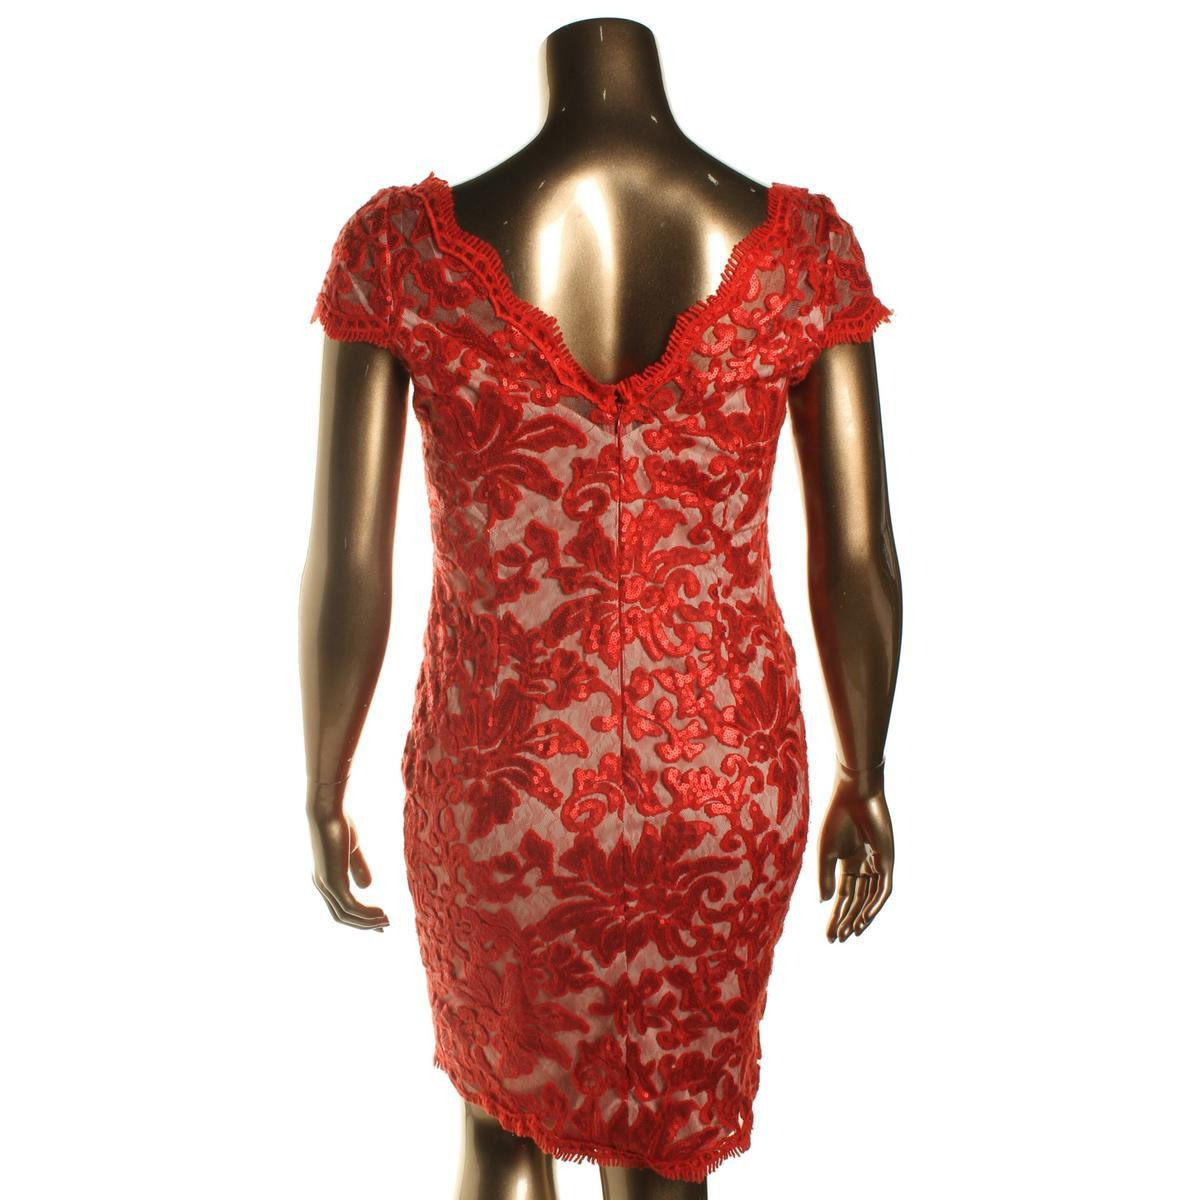 d9421c8f4ba Calvin Klein Lace Sequined Cocktail Dress in Red - Lyst